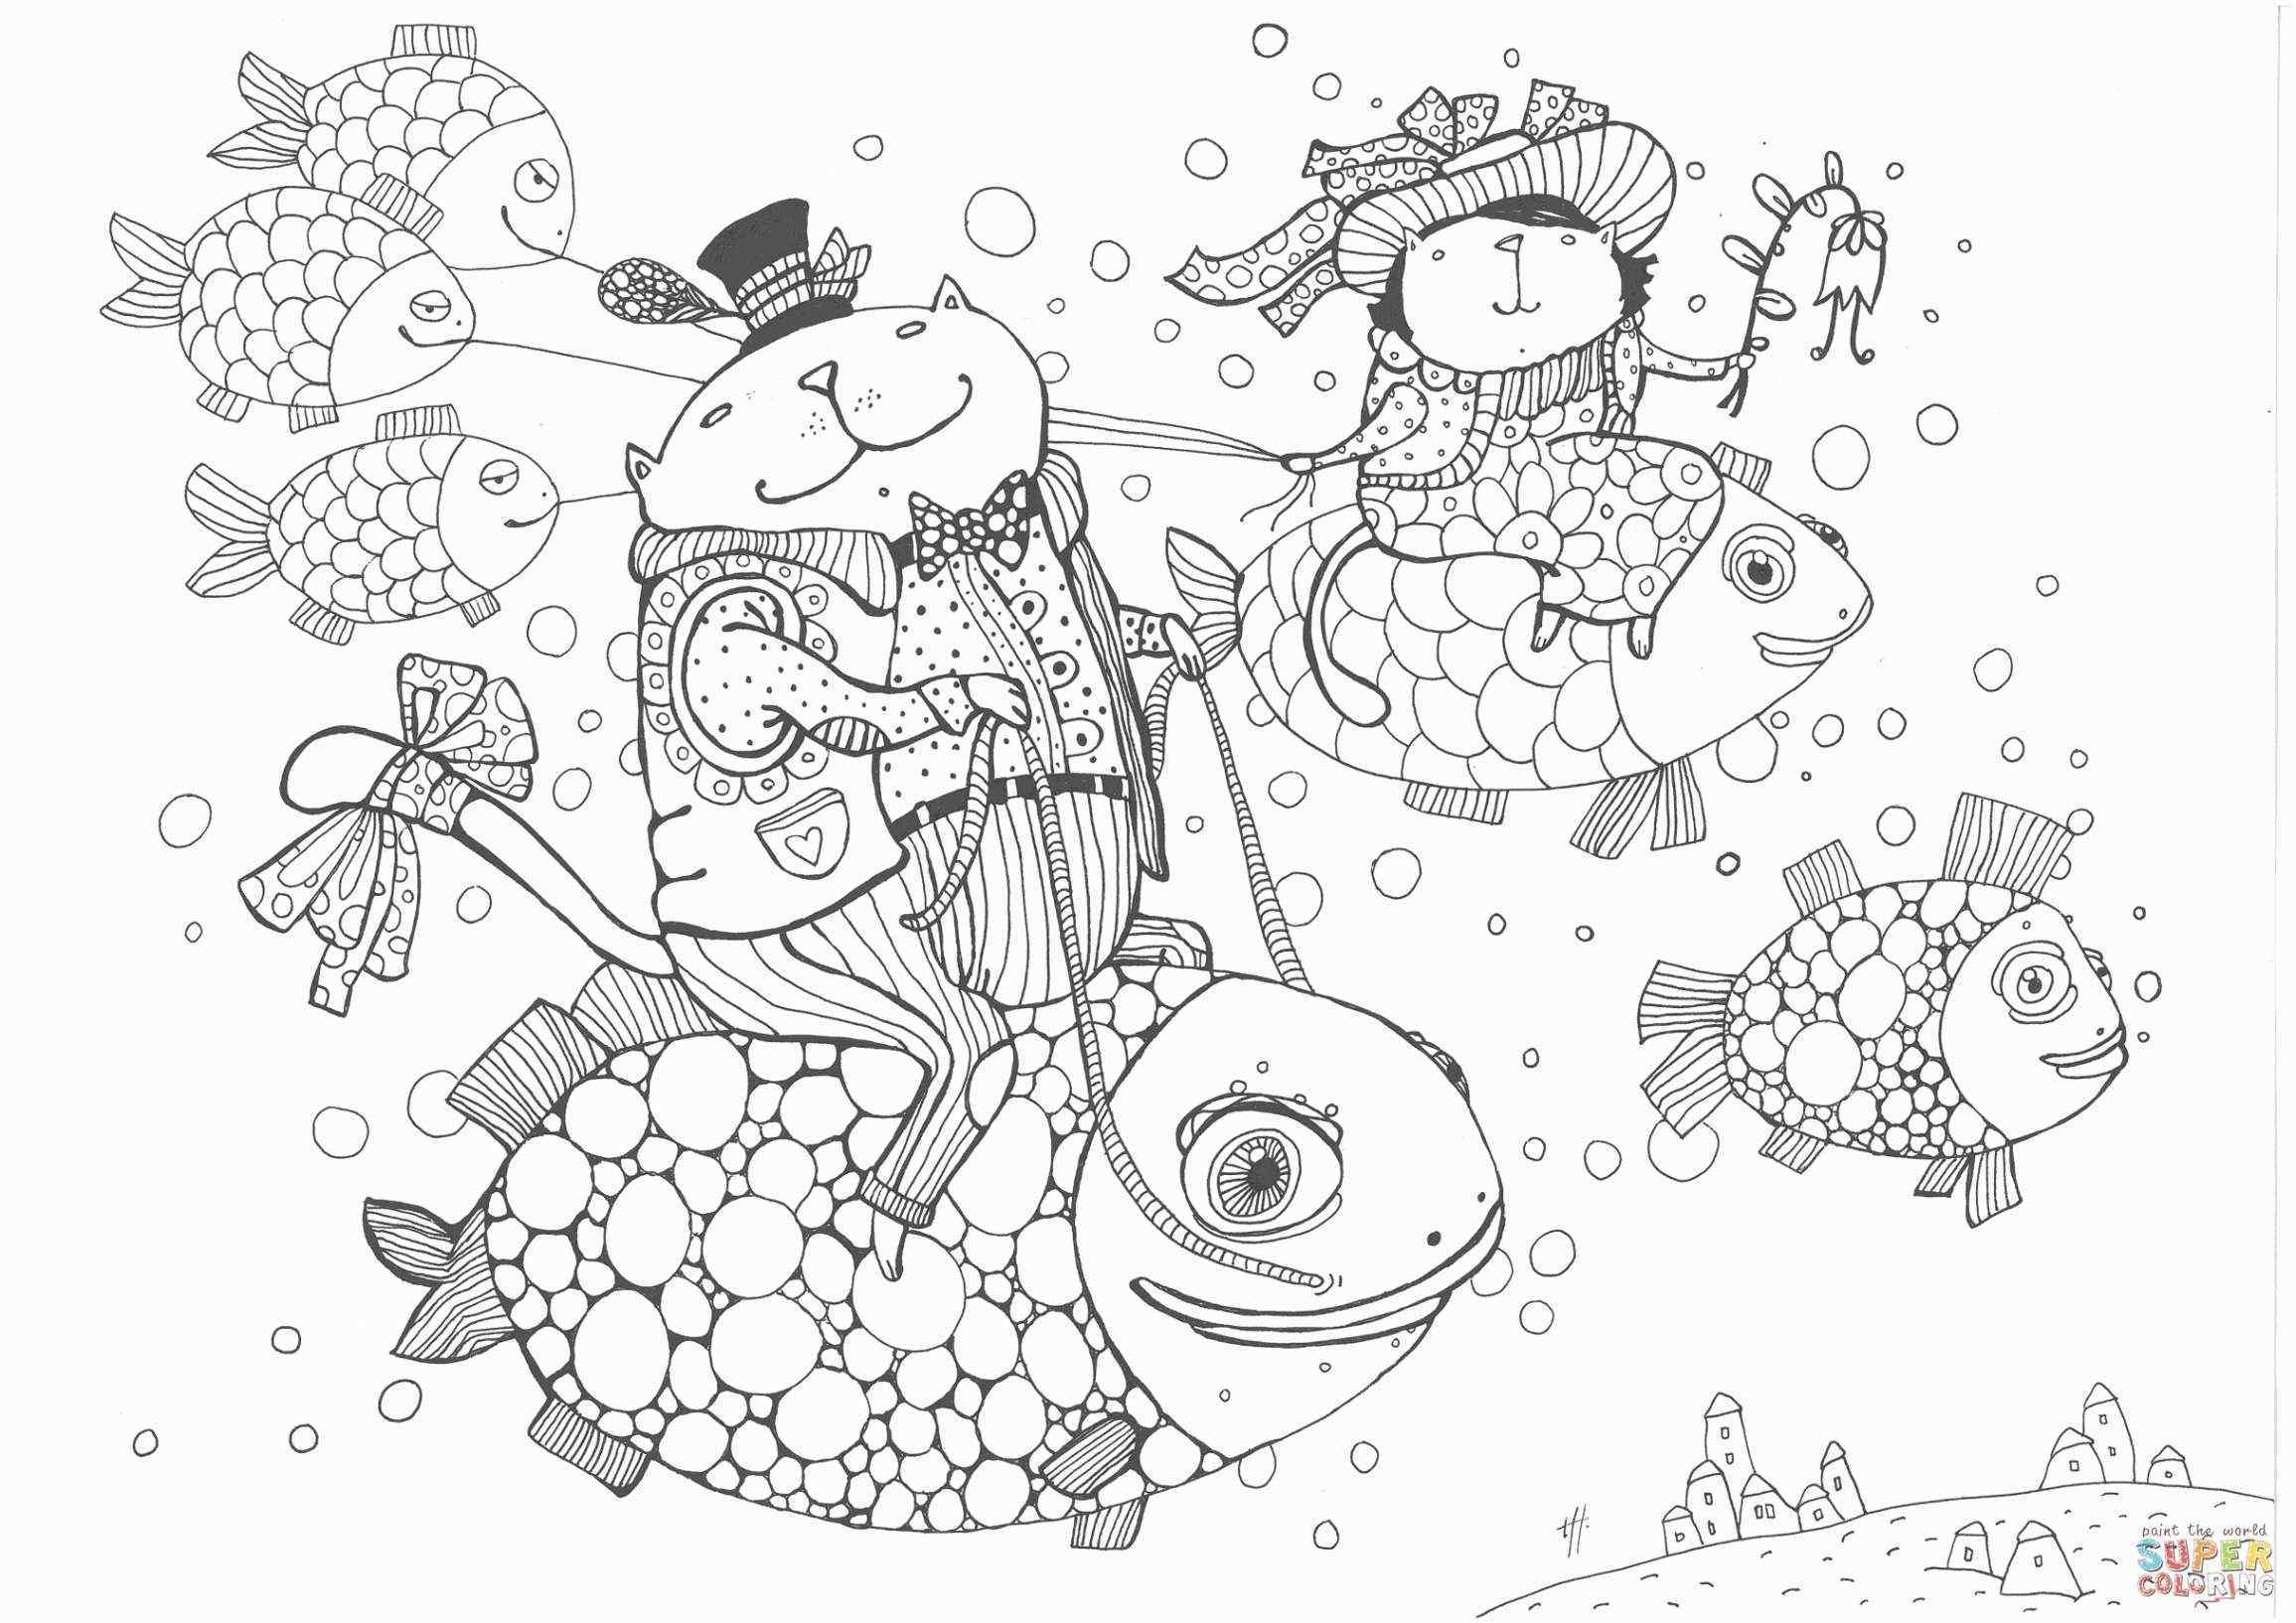 Merry Christmas Teacher Coloring Pages With 18 New Art Ideas For Teachers Prekhome